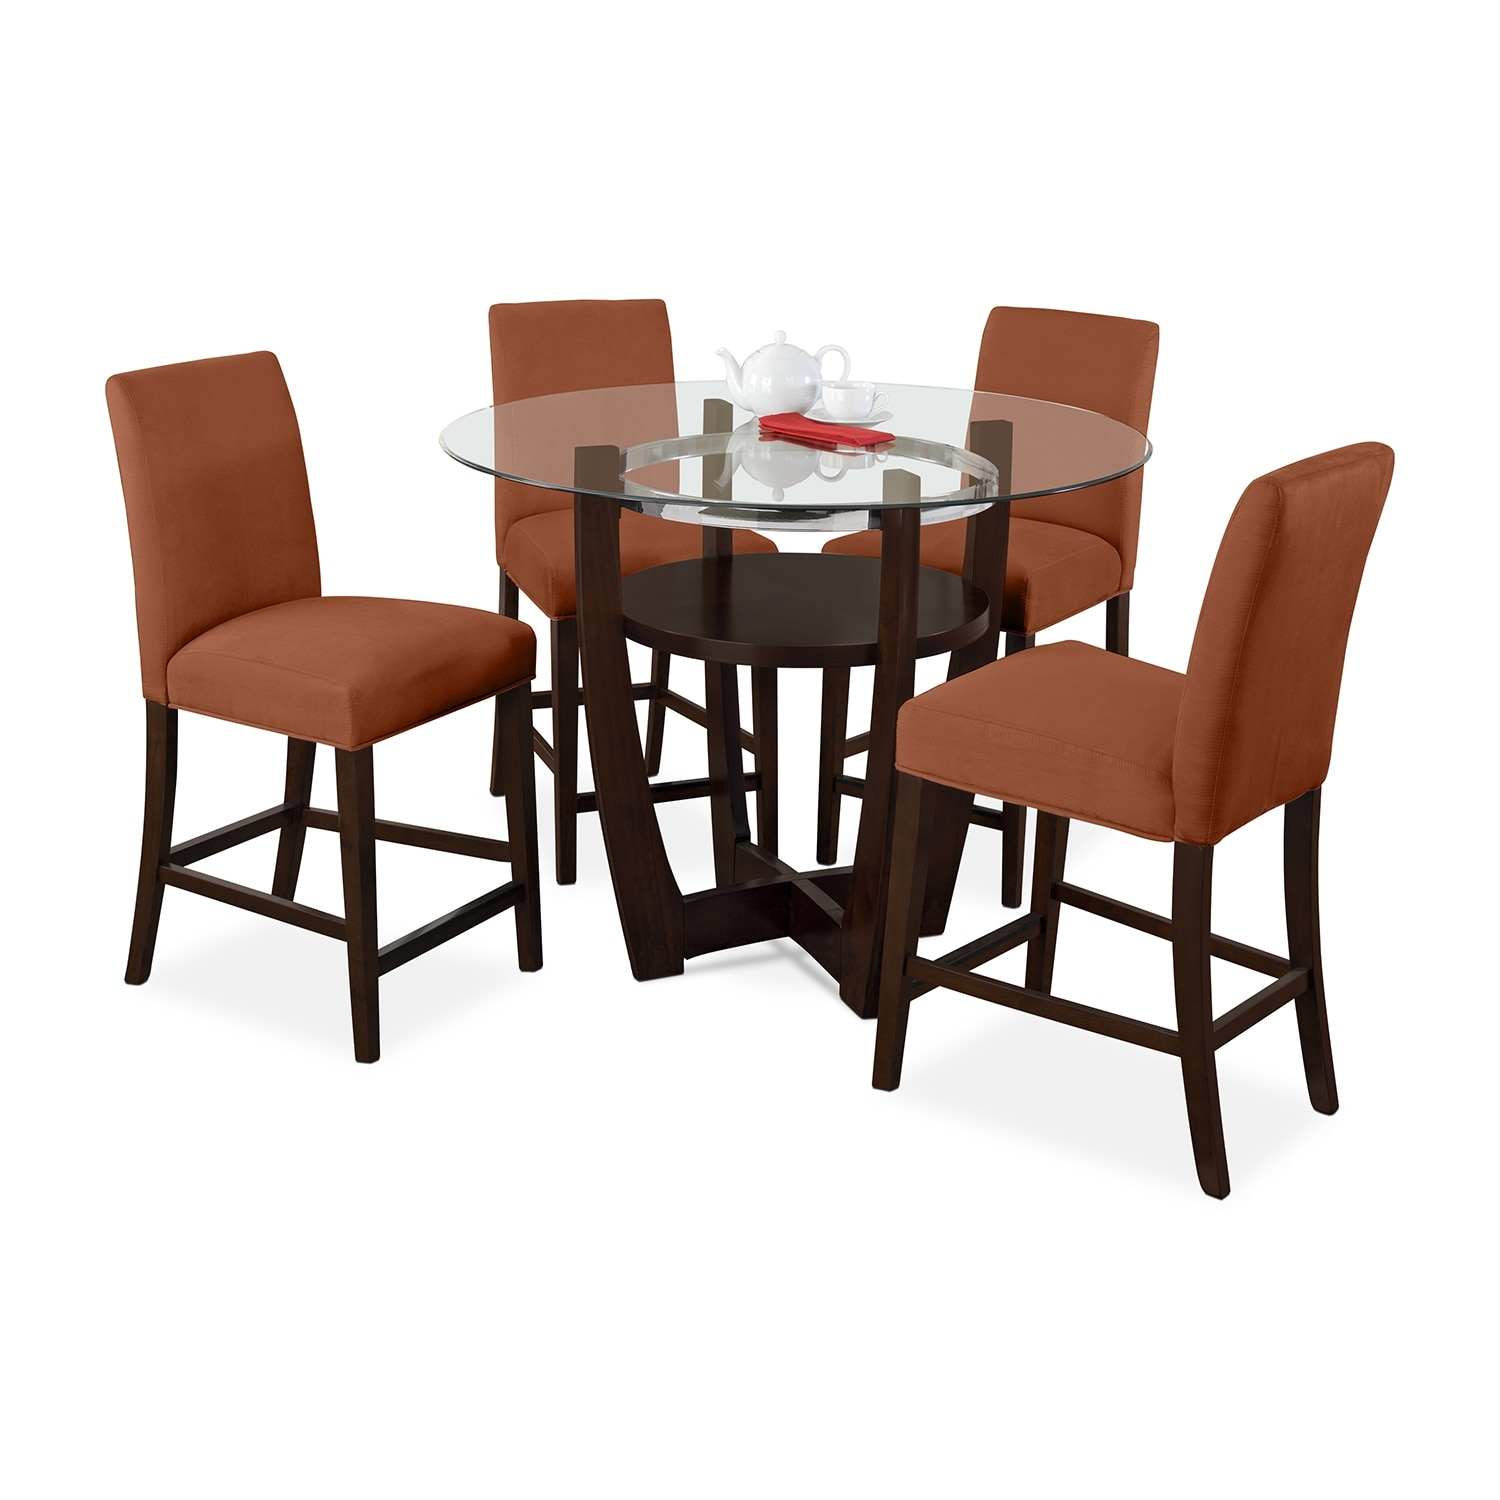 Alcove Counter-Height Dinette with Four Side Chairs - Orange